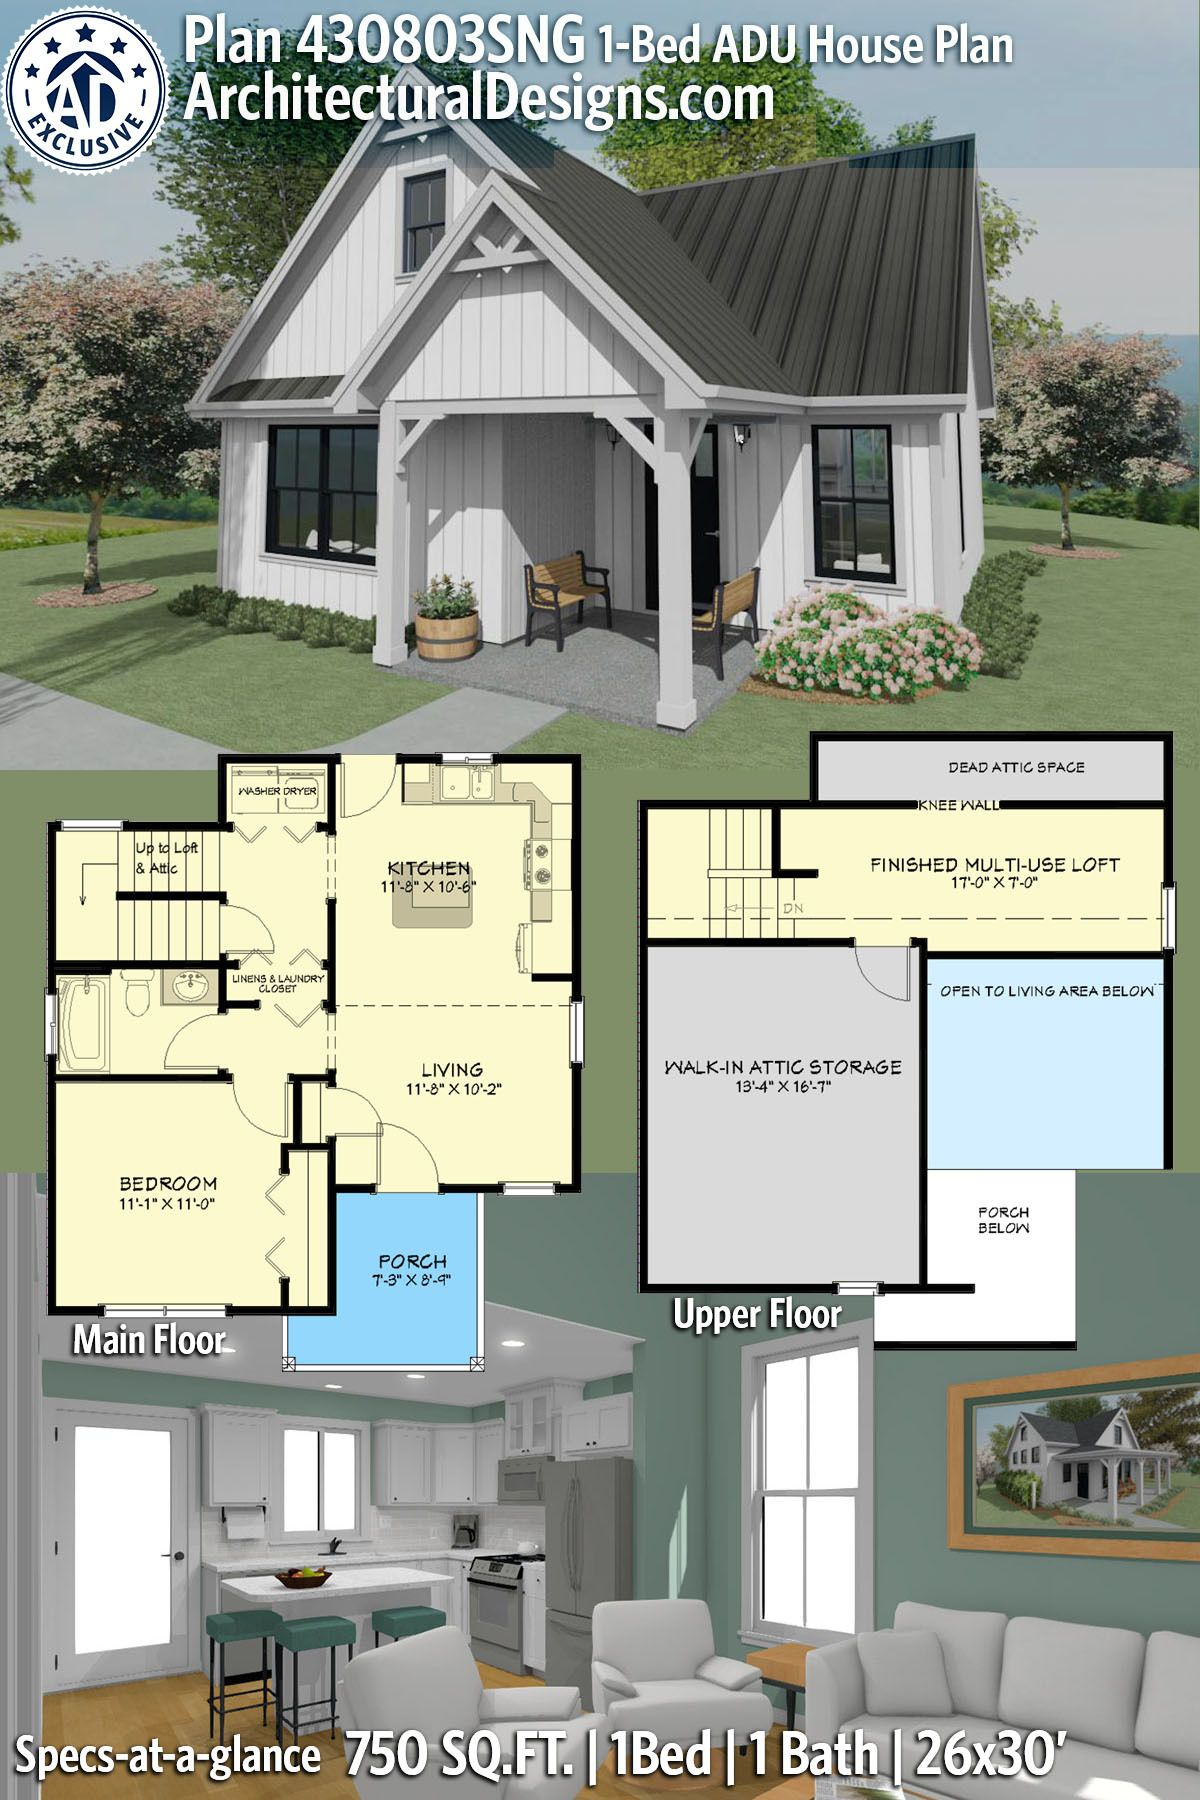 Plan 430803sng Exclusive Adu Home Plan With Multi Use Loft In 2020 Guest House Plans Pool House Plans Craftsman House Plans